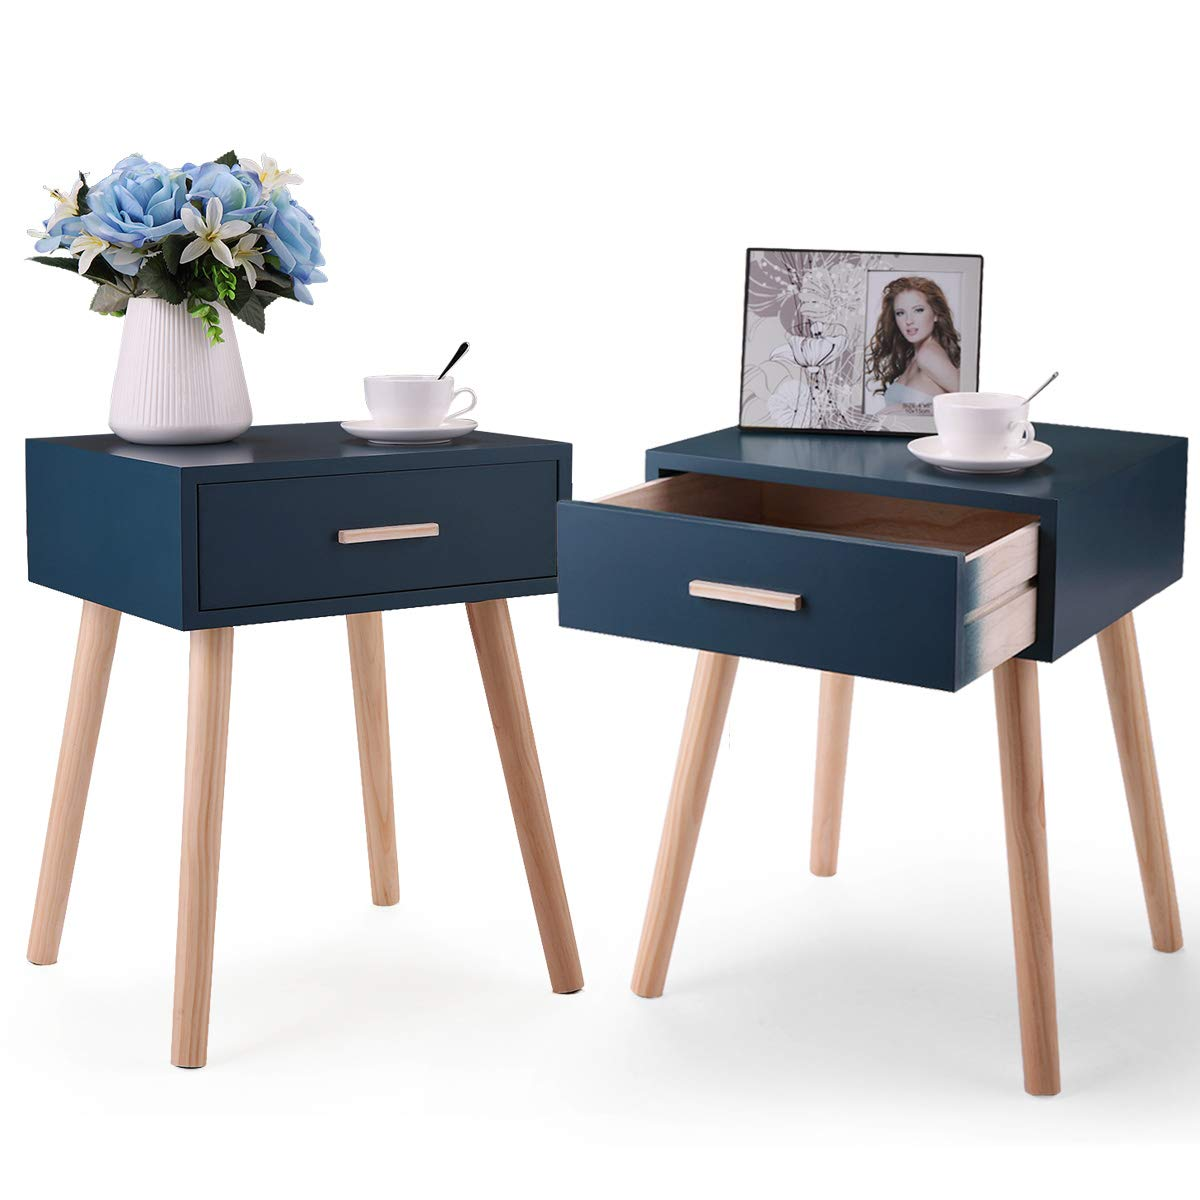 JAXPETY Set of 2 Side End Table Nightstand w/1 Drawers Storage (Dark Blue)